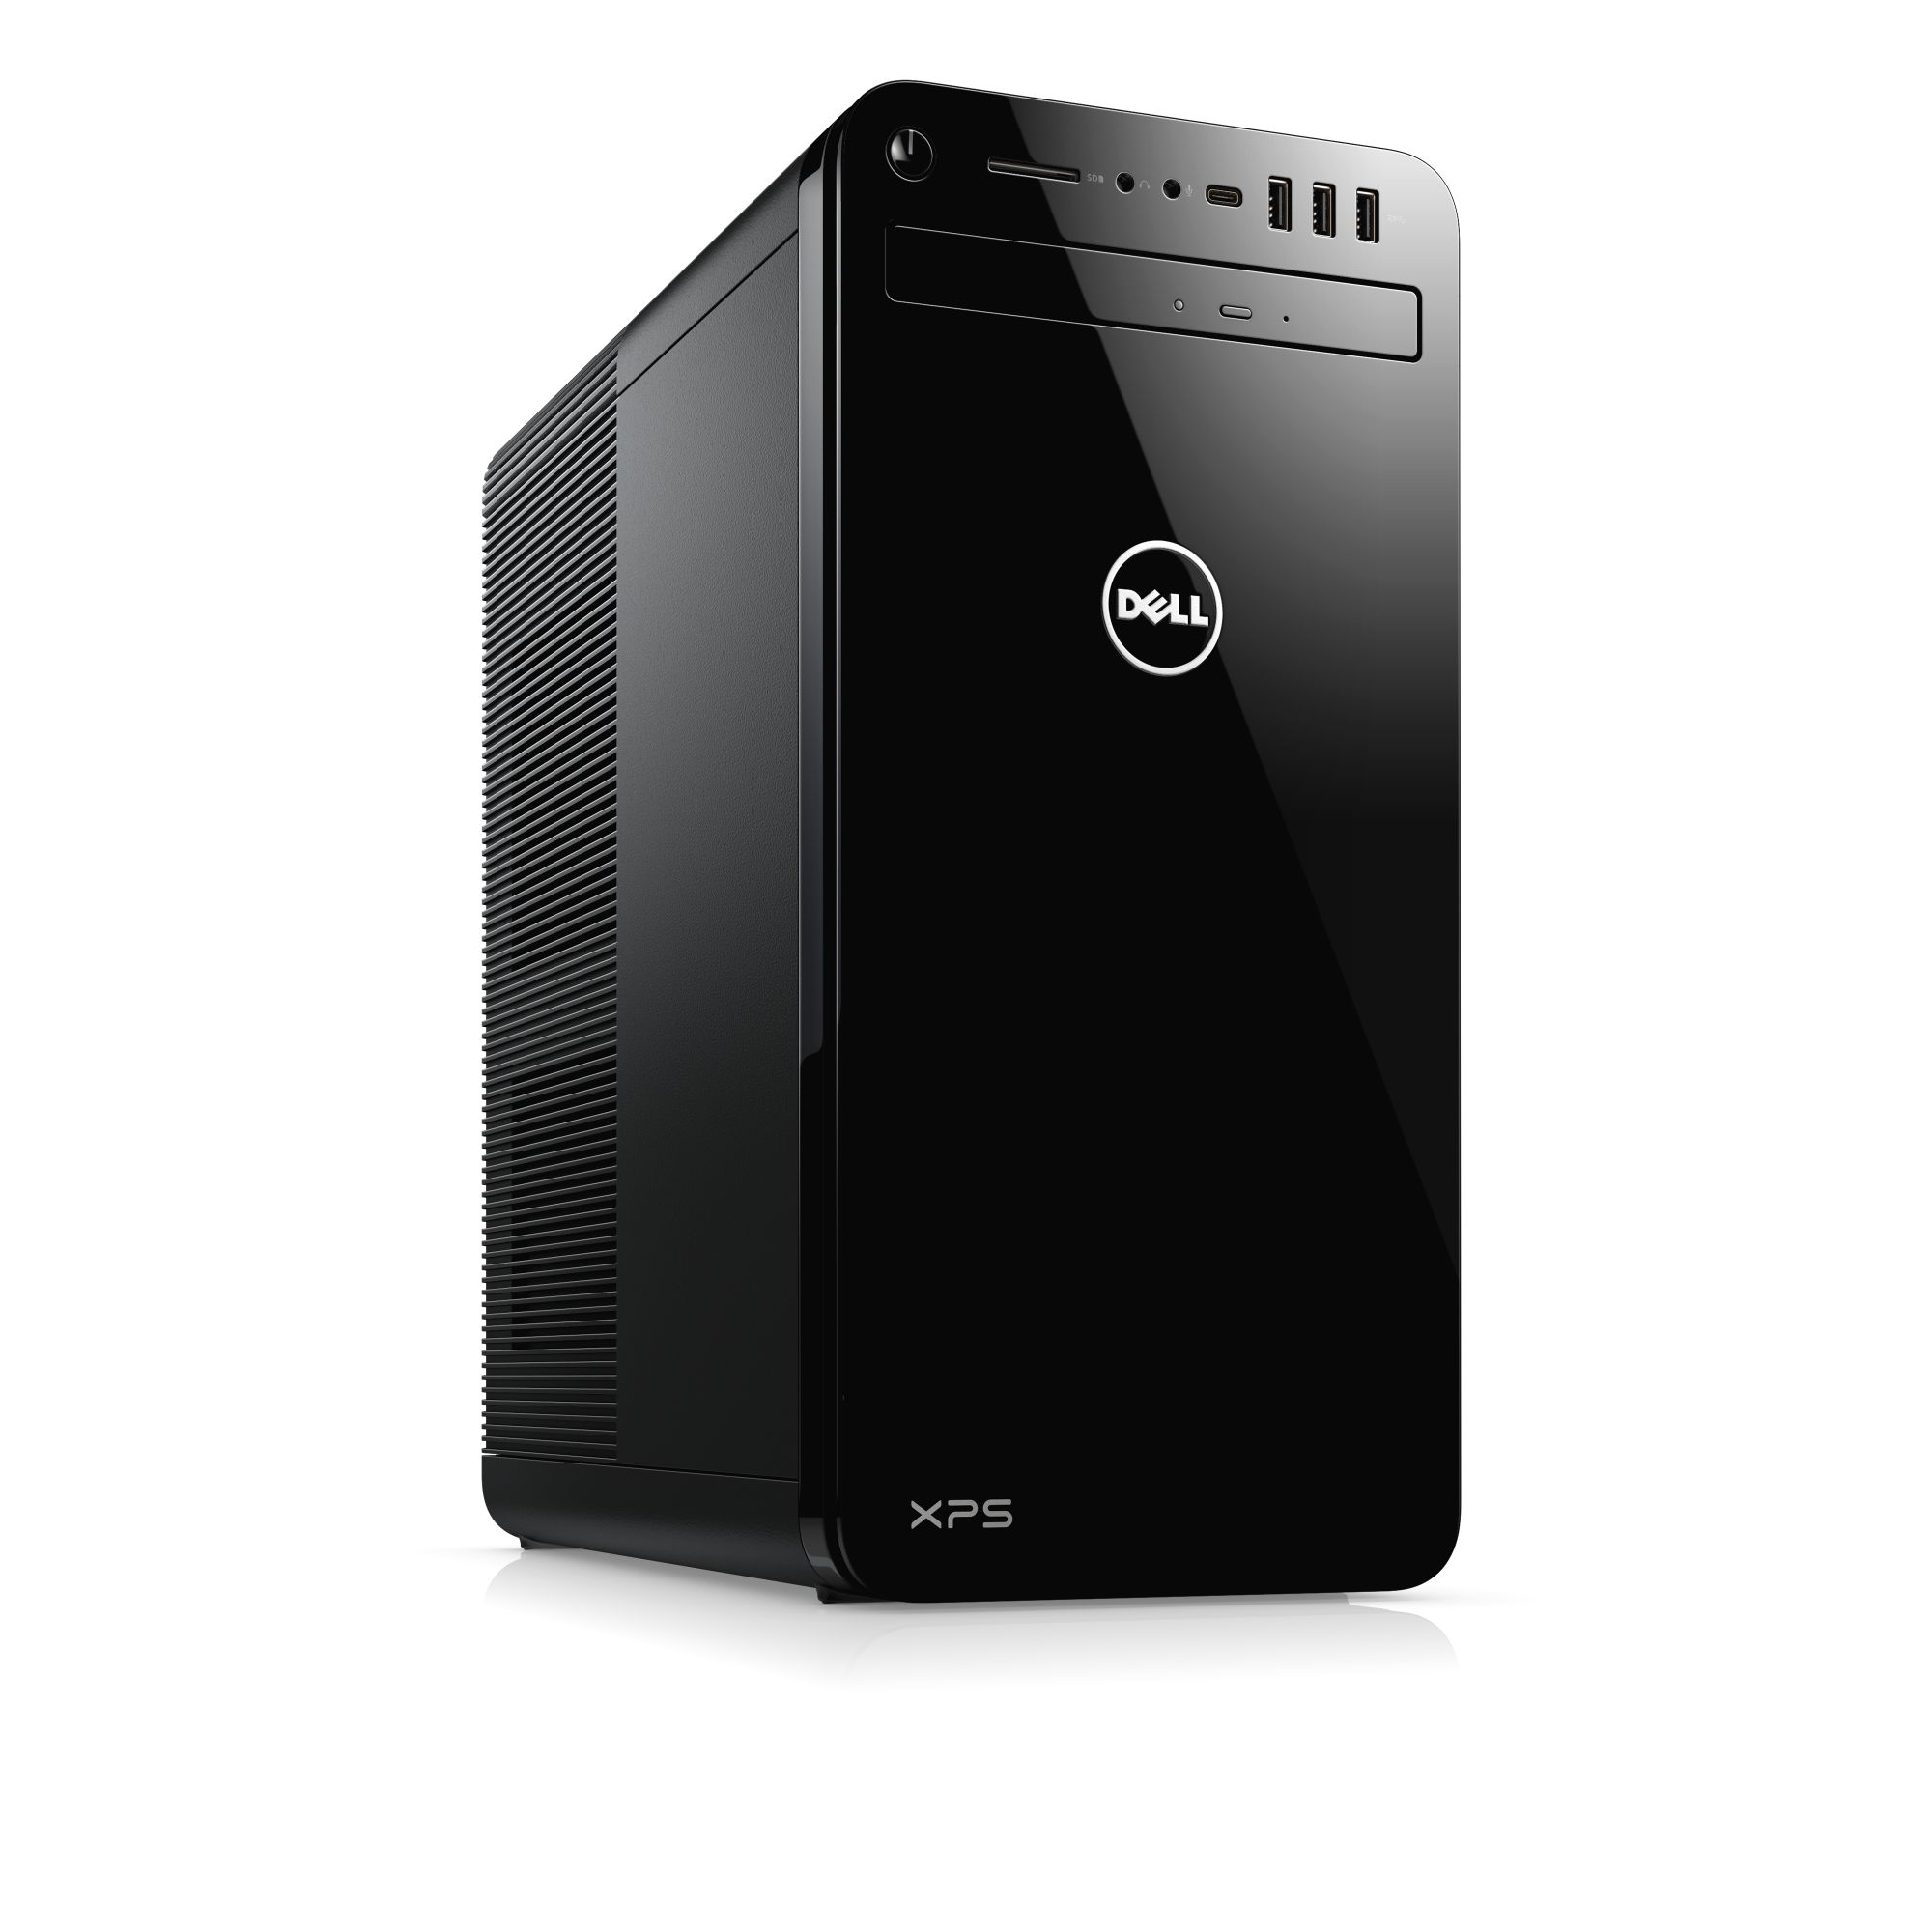 Dell PC XPS 8930 i7-8700/16GB/256B SSD+4TB/GTX1070-8GB/HDMI/DP/DVI/USB-C/WiFi+BT/DVD-RW/W10/2RNBD